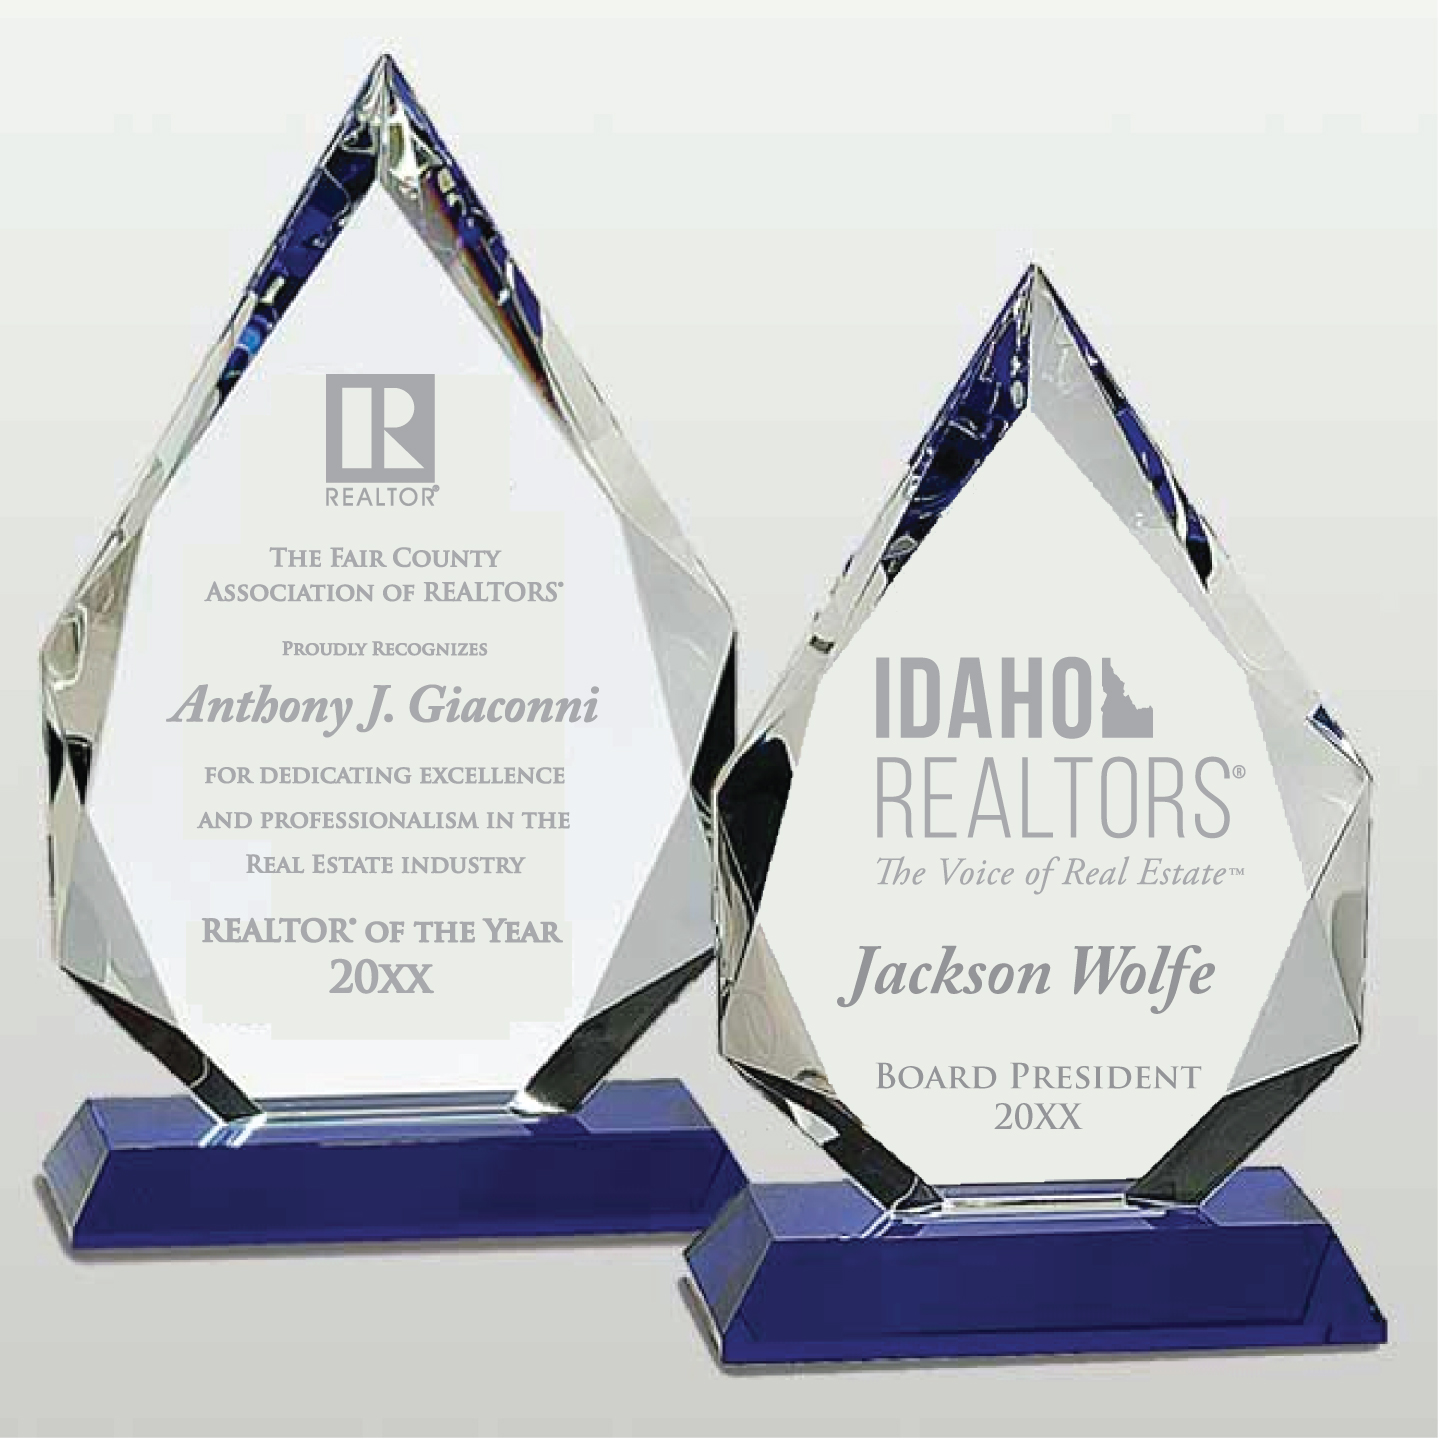 Crystal Diamond on Pedastal Awards,Award,Plaque,Plaques,Crystal,Glass